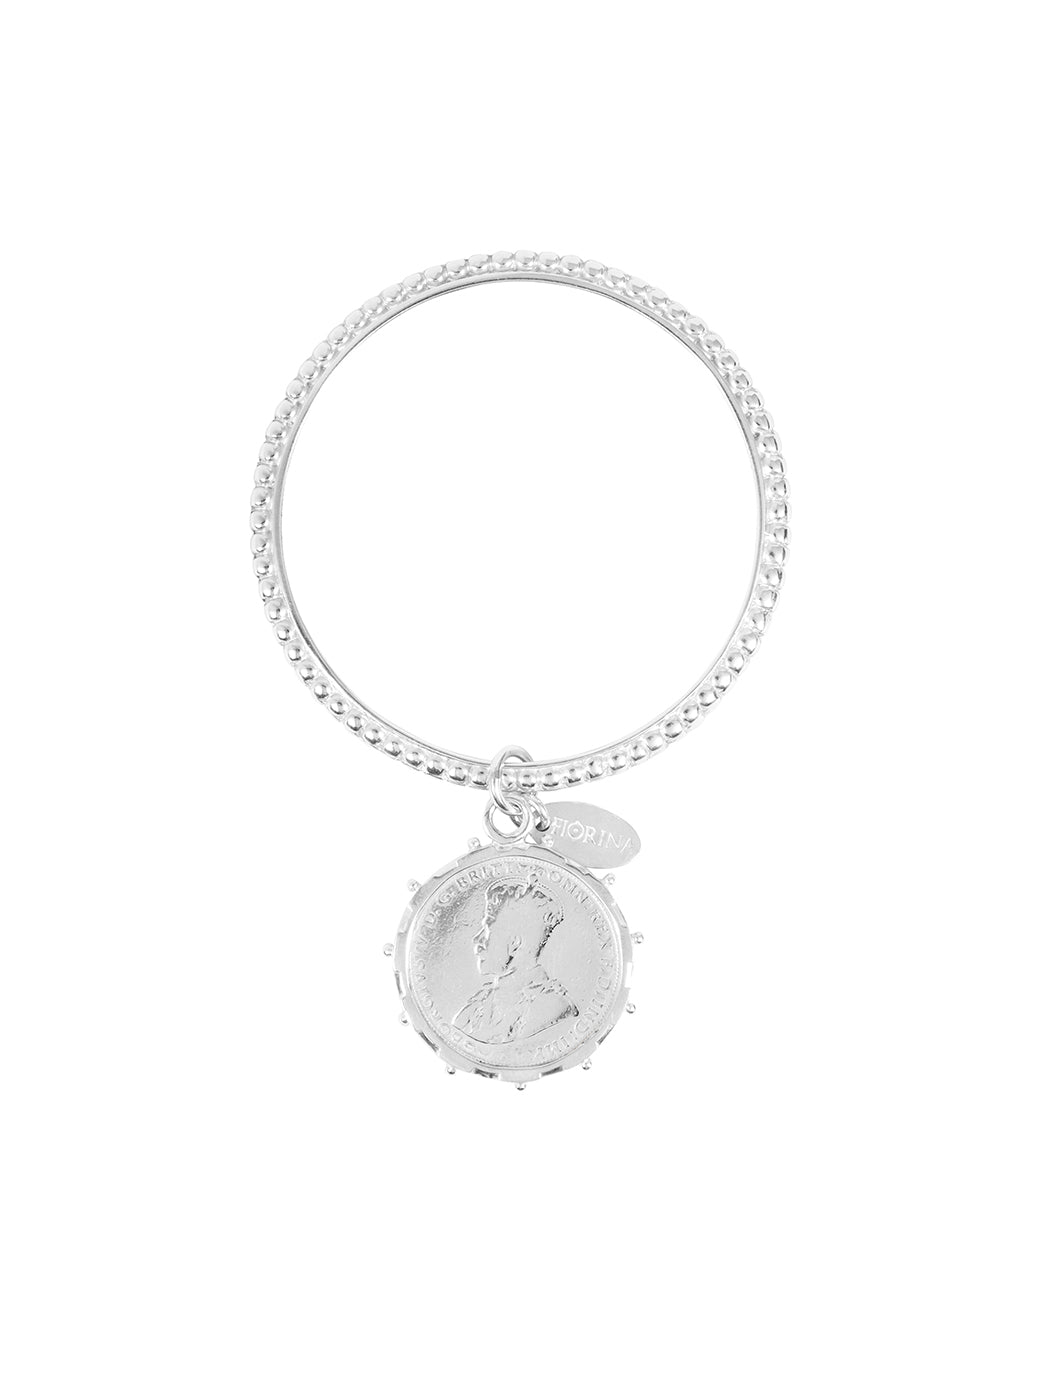 Fiorina Jewellery Alia Bangle with Silver Encased Coin